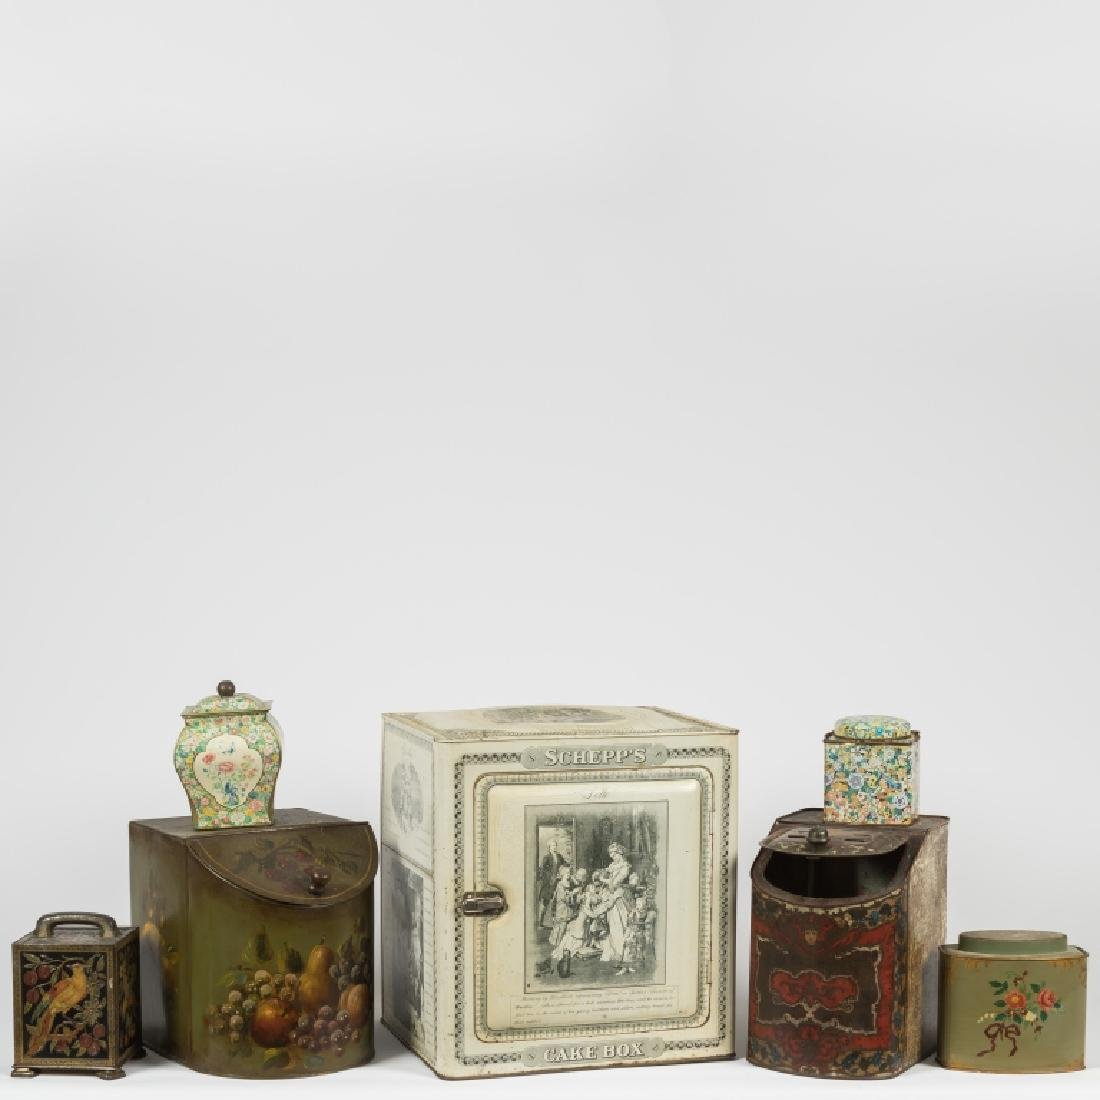 Group of Miscellaneous Cookie Tins - Schepps